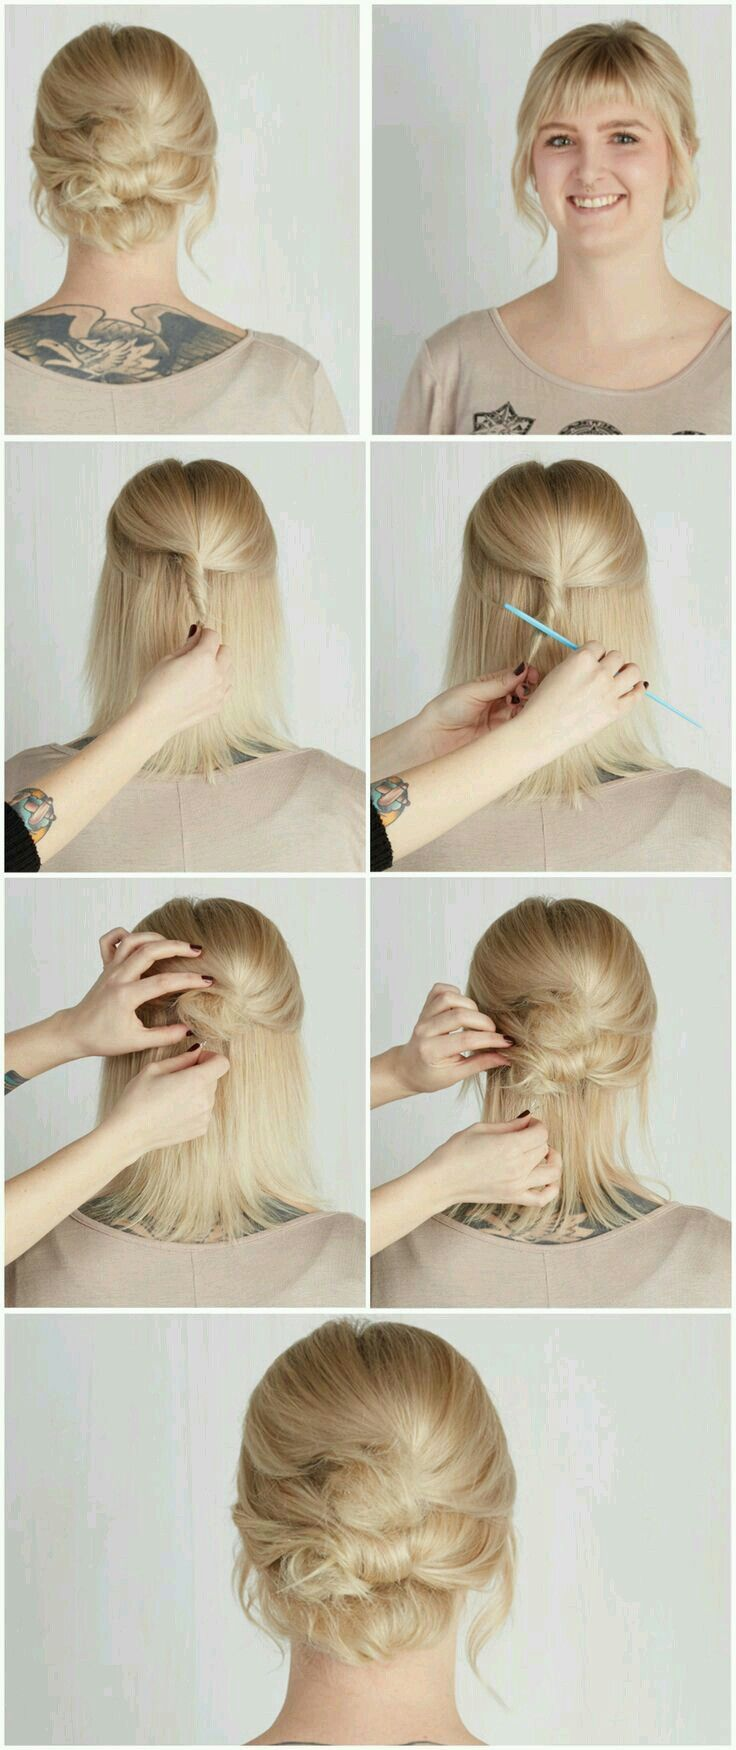 Pin by tamara on rockabilly pinterest easy updo updo and short hair